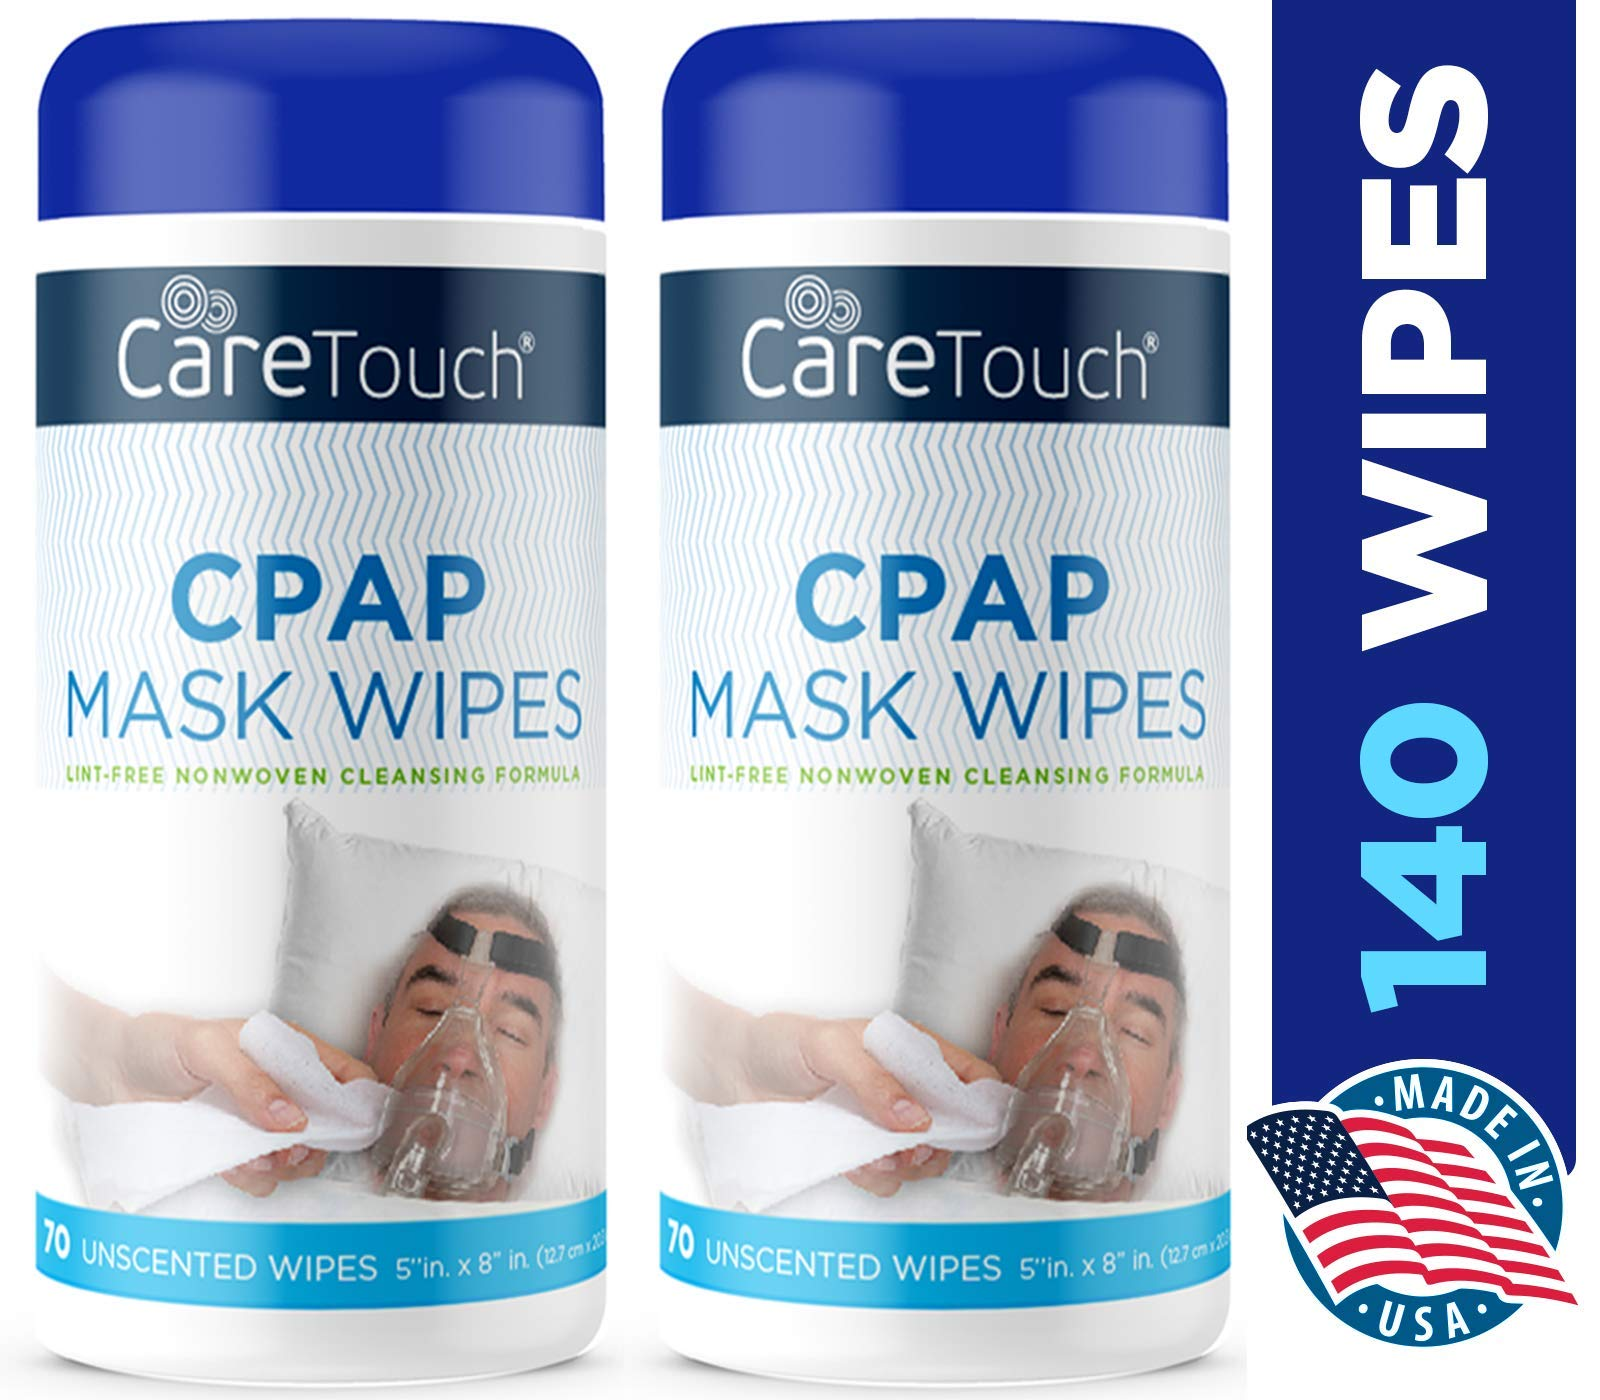 Care Touch CPAP Cleaning Mask Wipes - Unscented, Lint Free - 70 Wipes, Pack of 2-140 Wipes Total by Care Touch